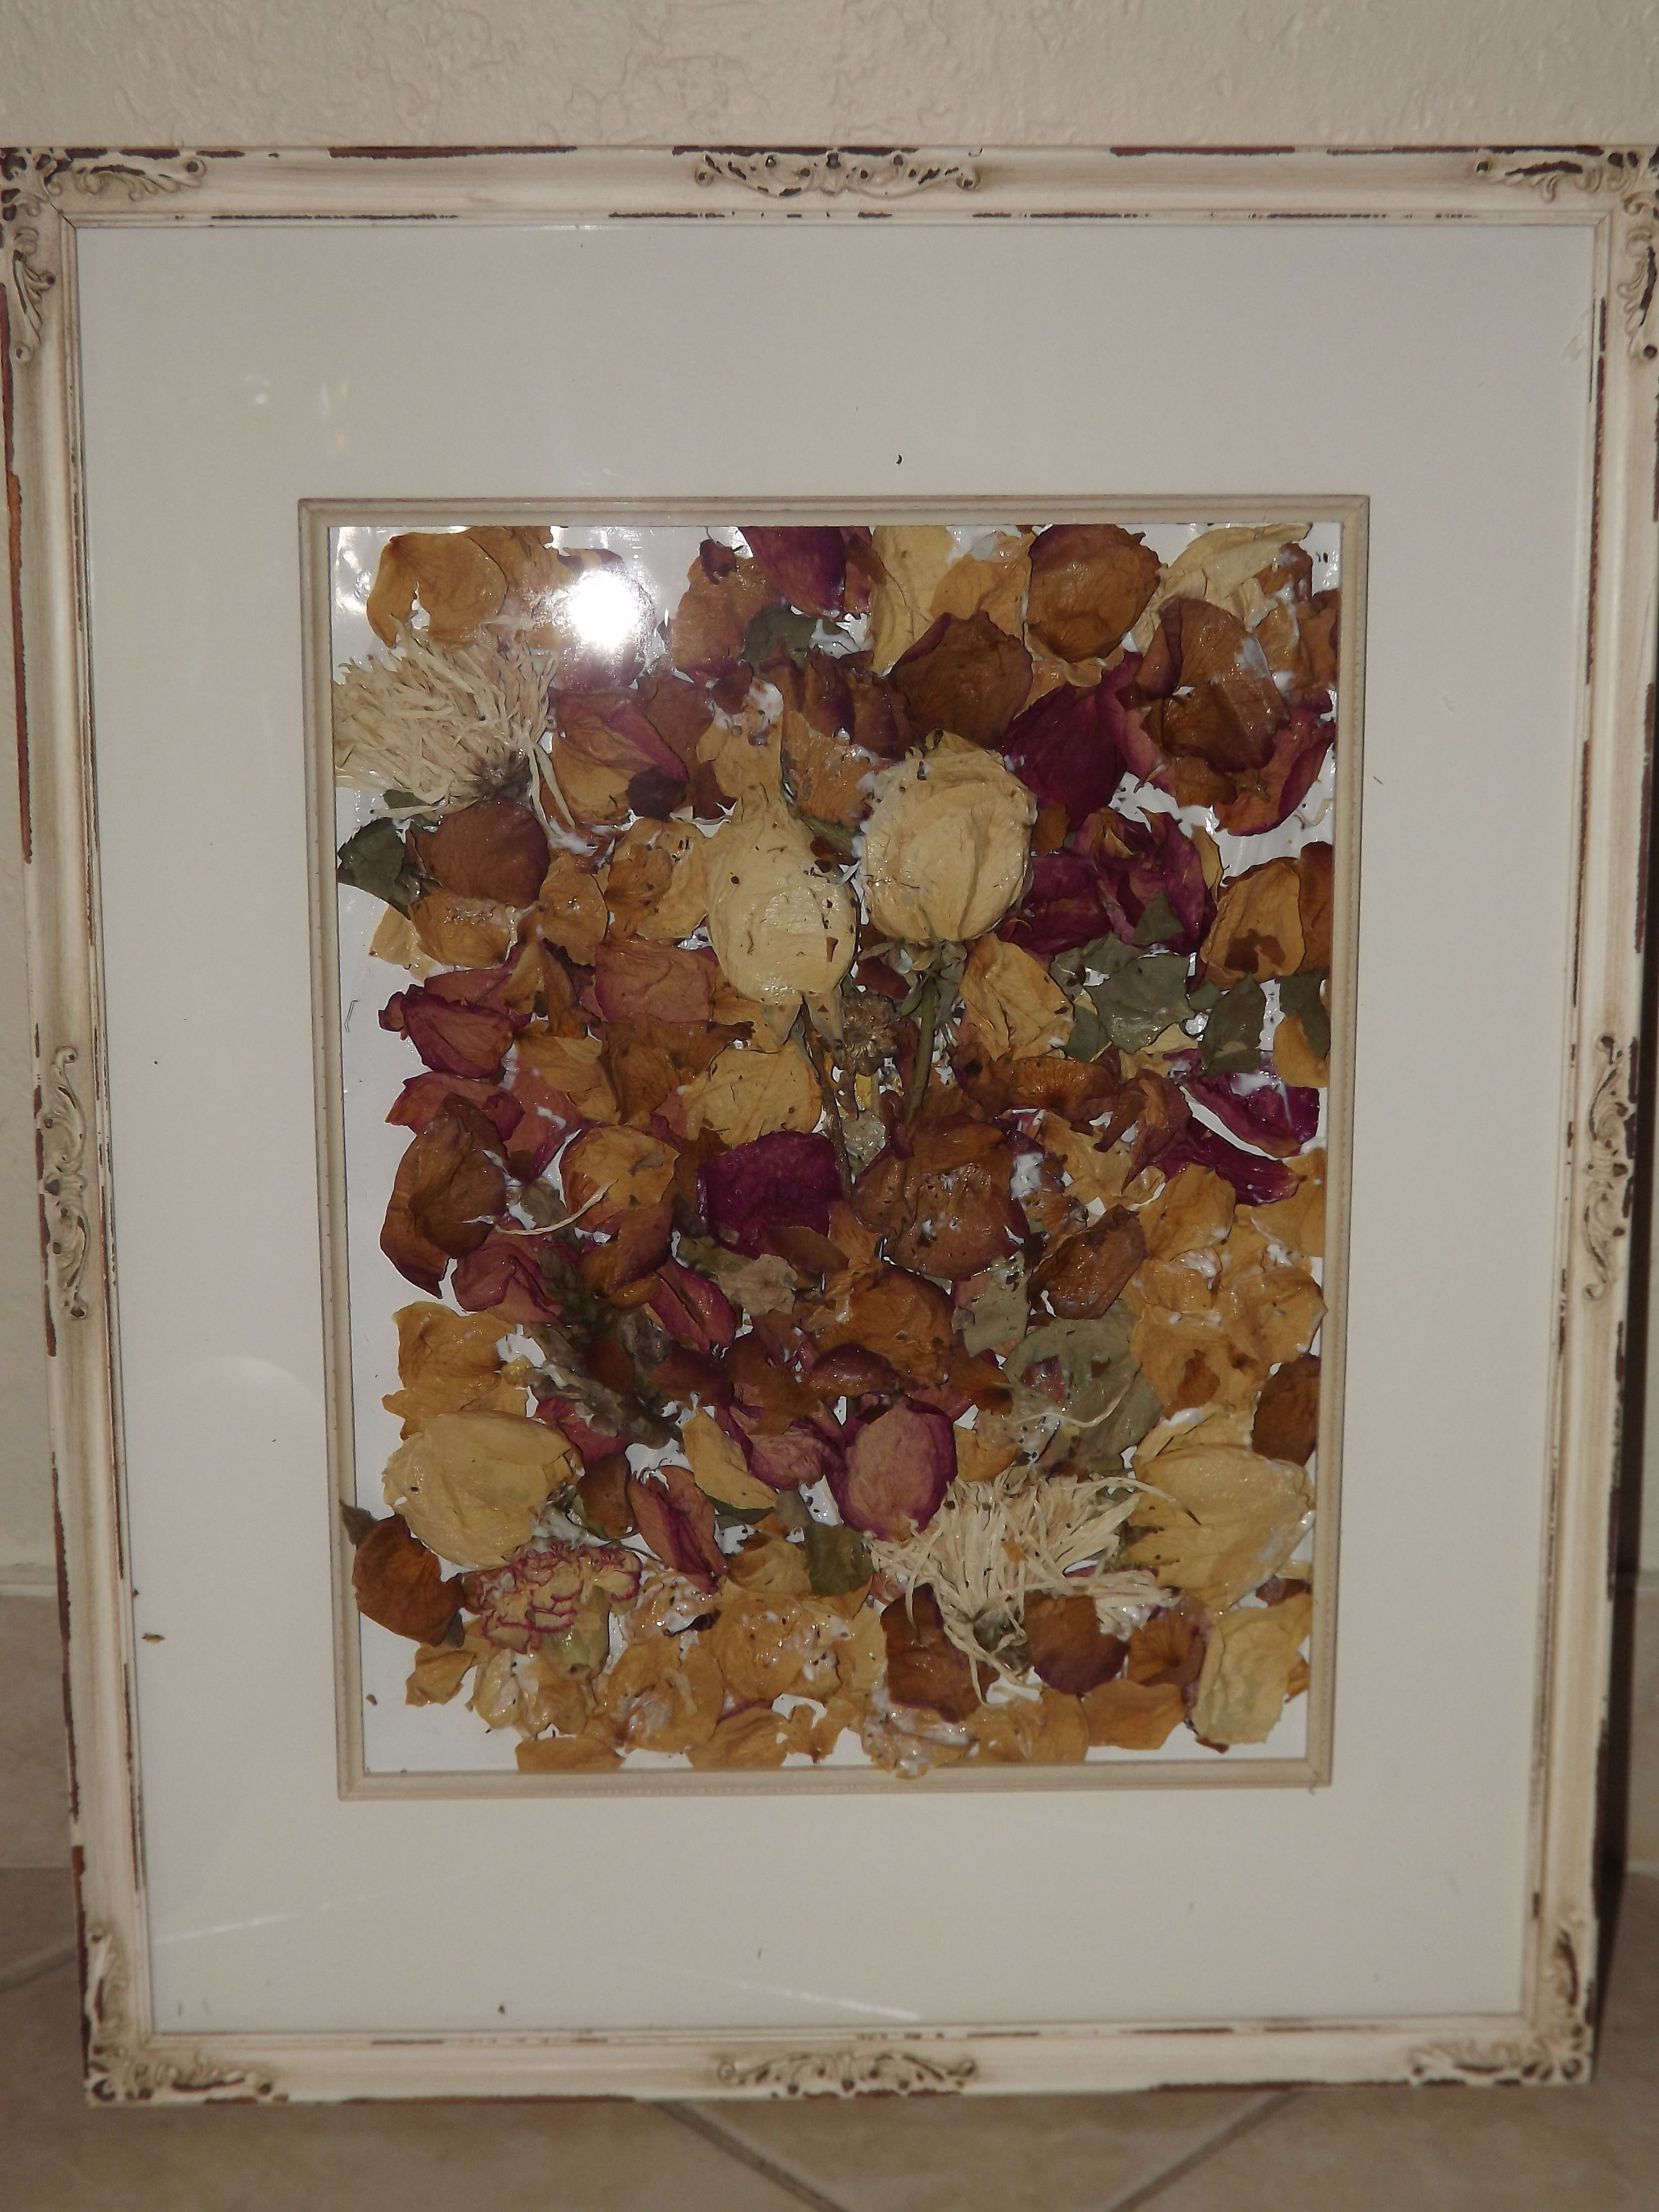 I made this with the dried flowers from my fathers memorial as a use dried flowers from a loved ones funeral to make this beautiful memorial izmirmasajfo Images